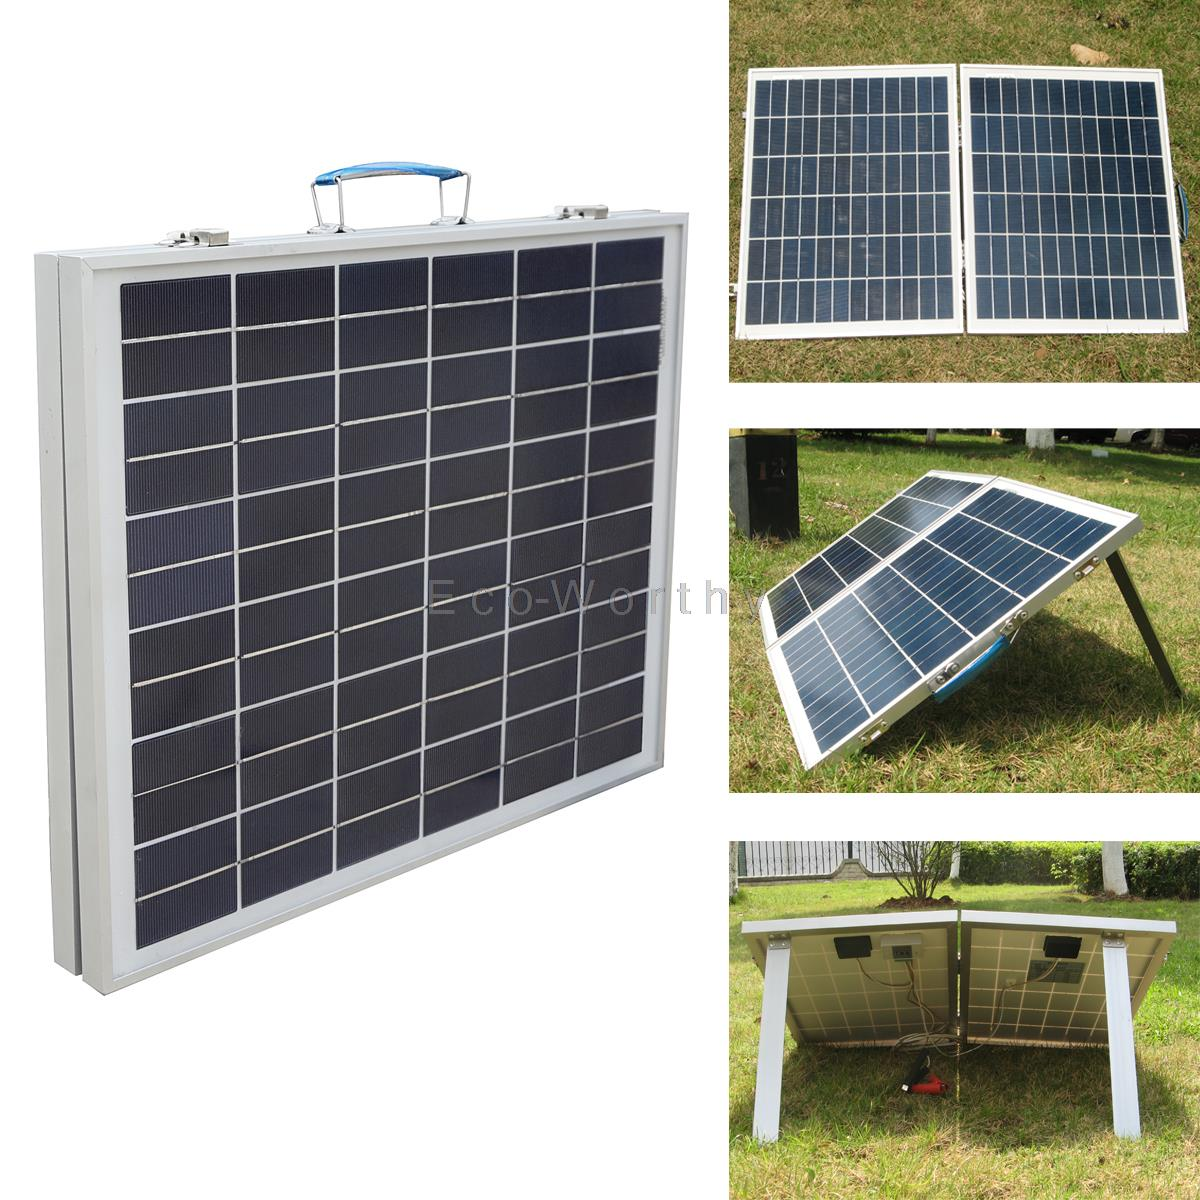 40w 18v foldable solar panel, solar module for charge 12v battery widely used in camping caravans farms,beaches etc(China (Mainland))